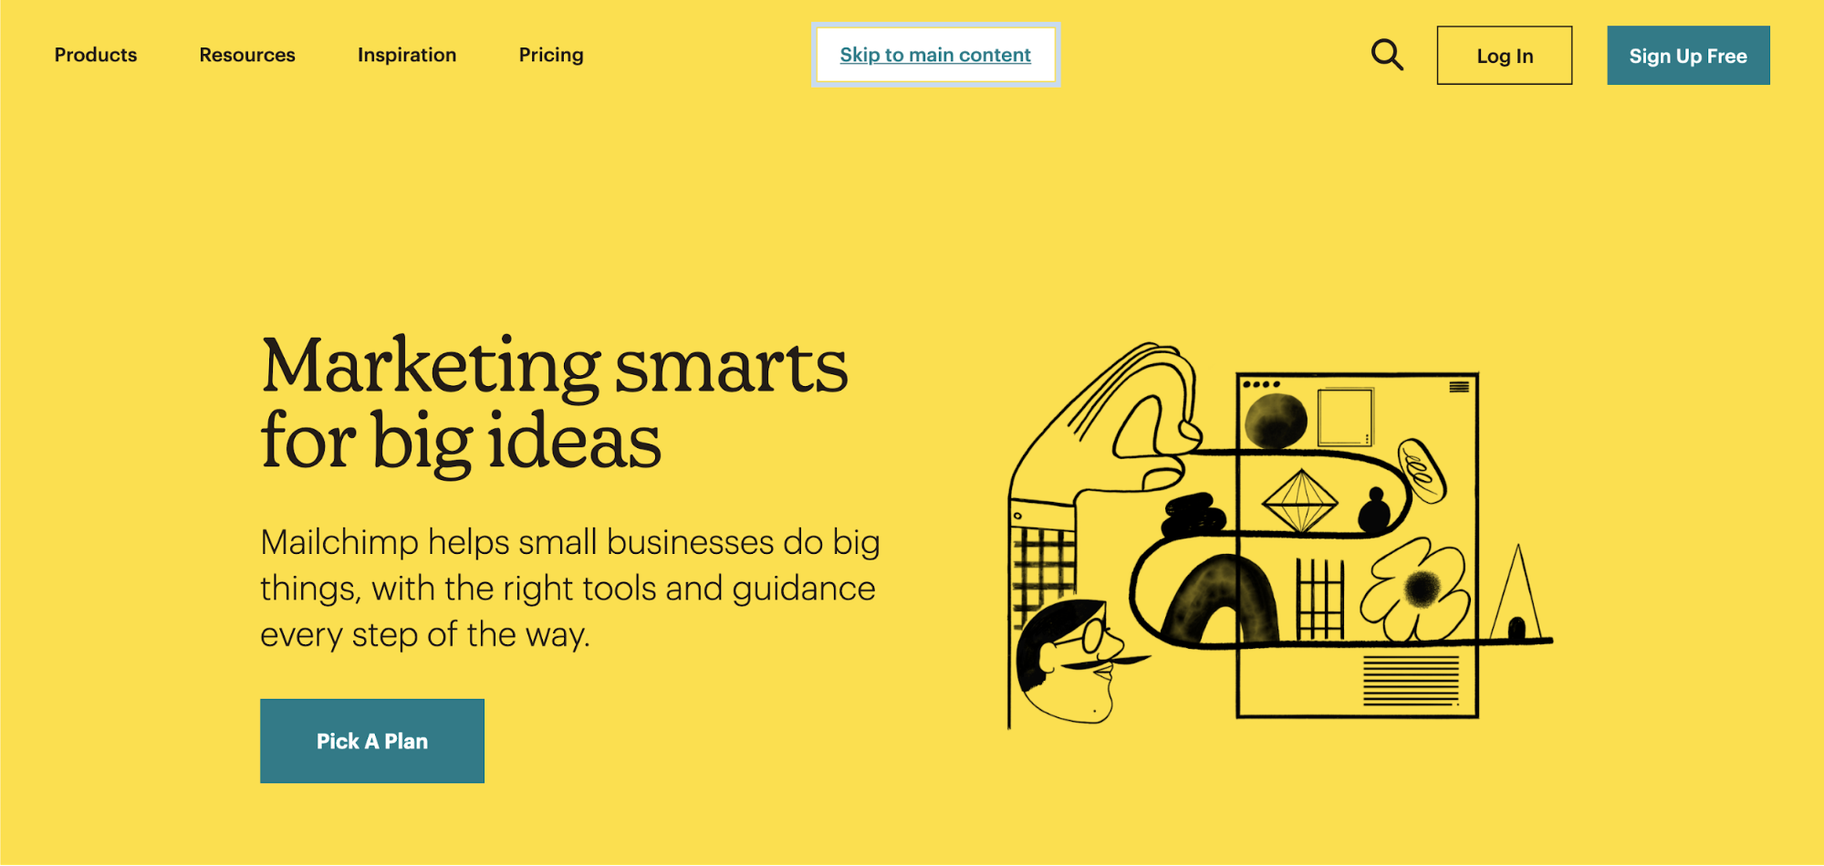 Email Marketing Software for Small Businesses: MailChimp